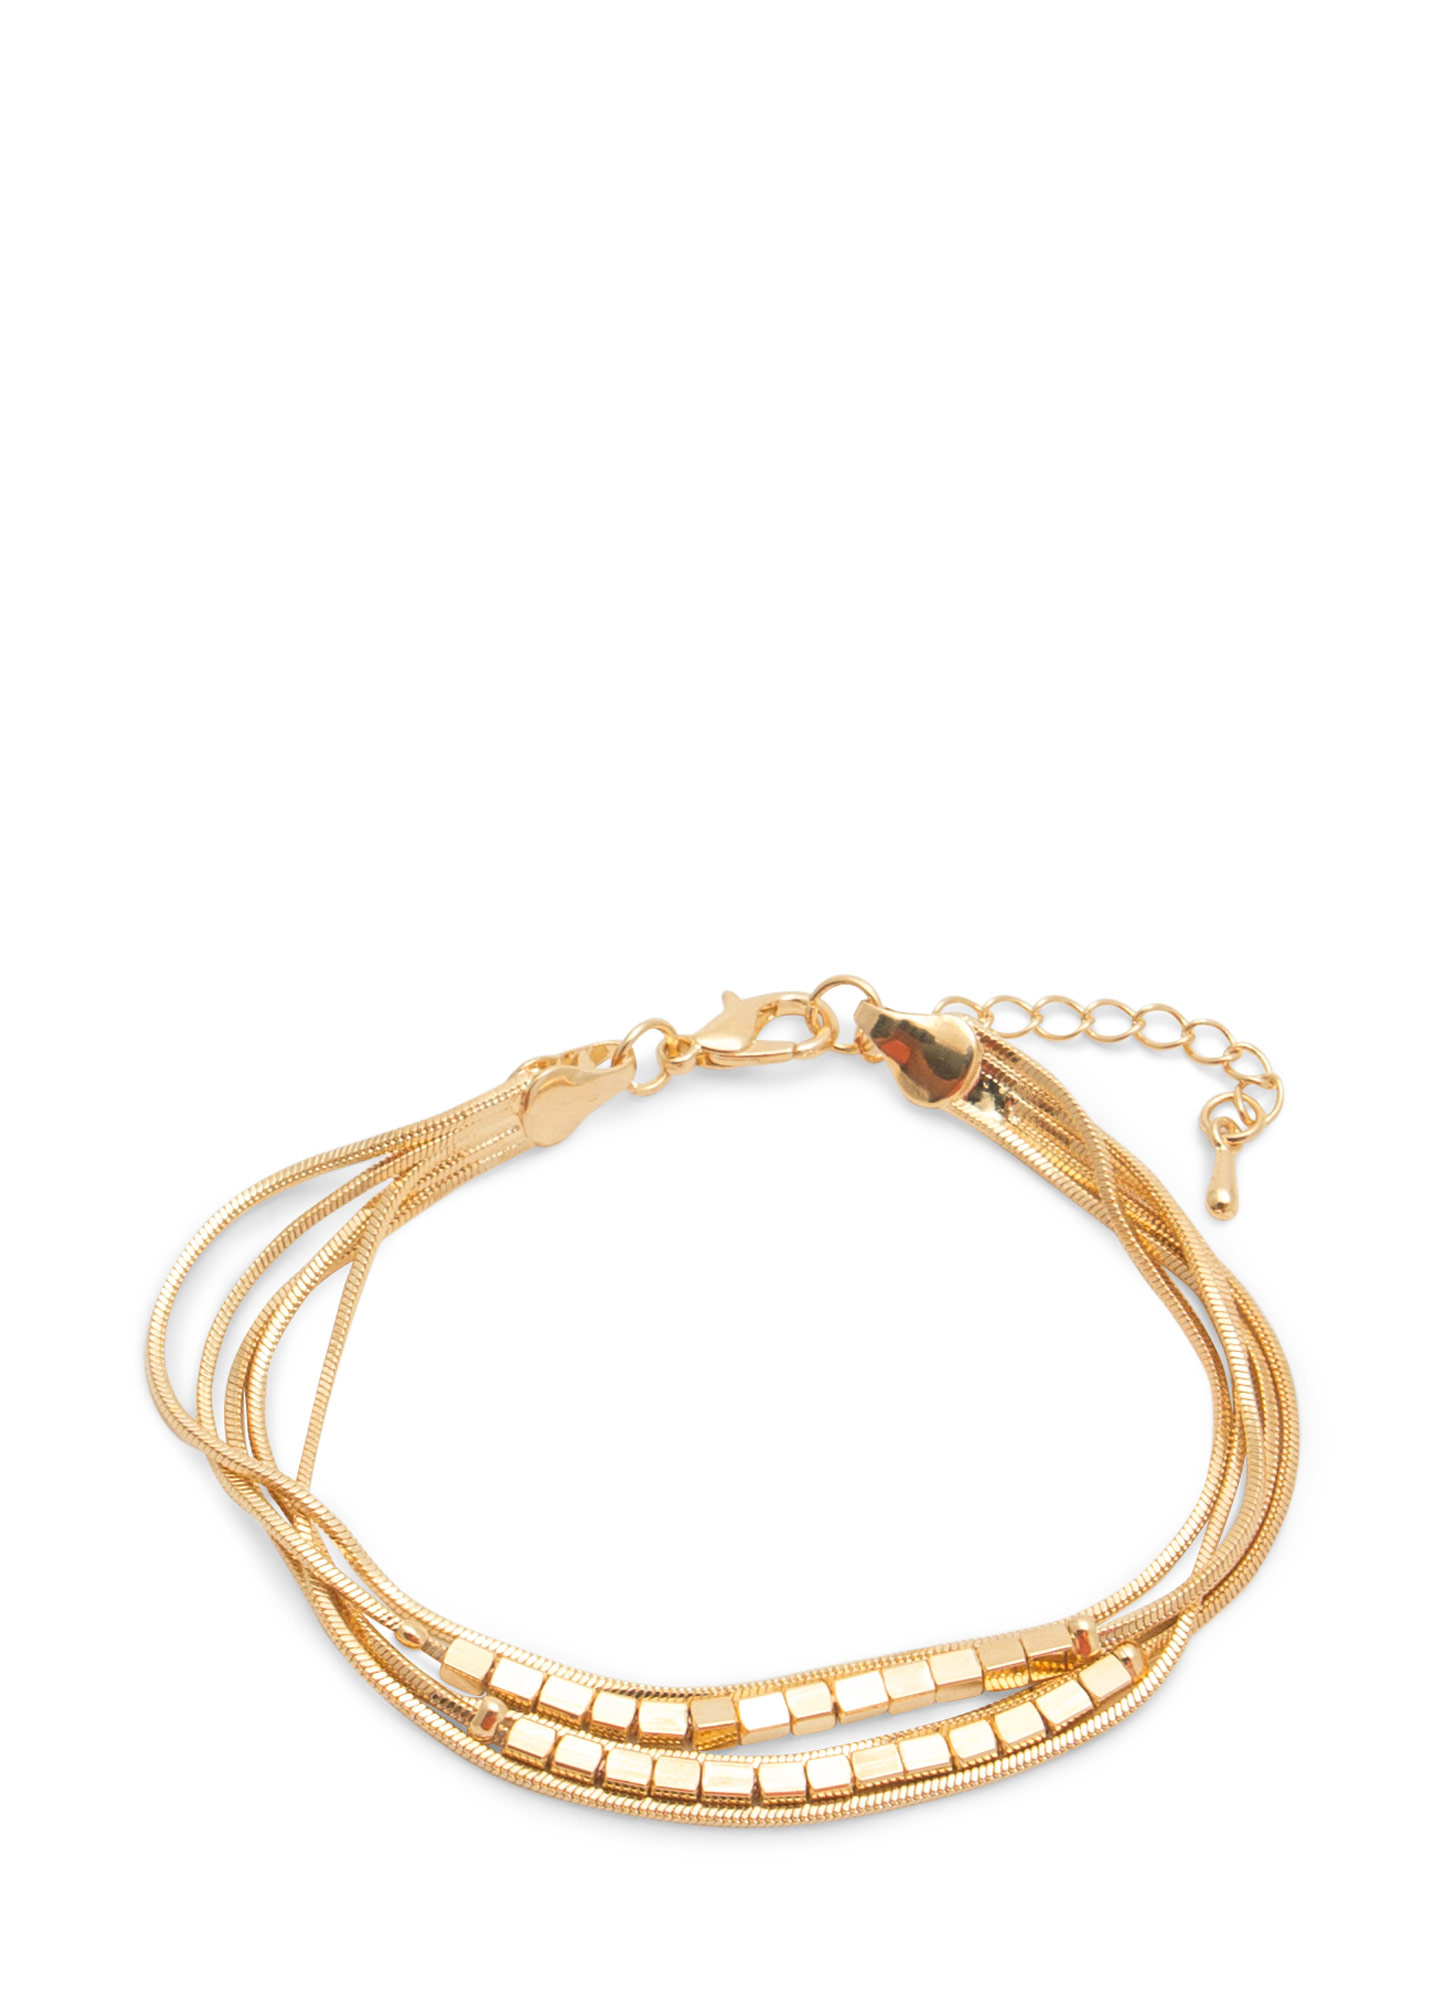 Block Bead Metallic Chains Bracelet GOLD